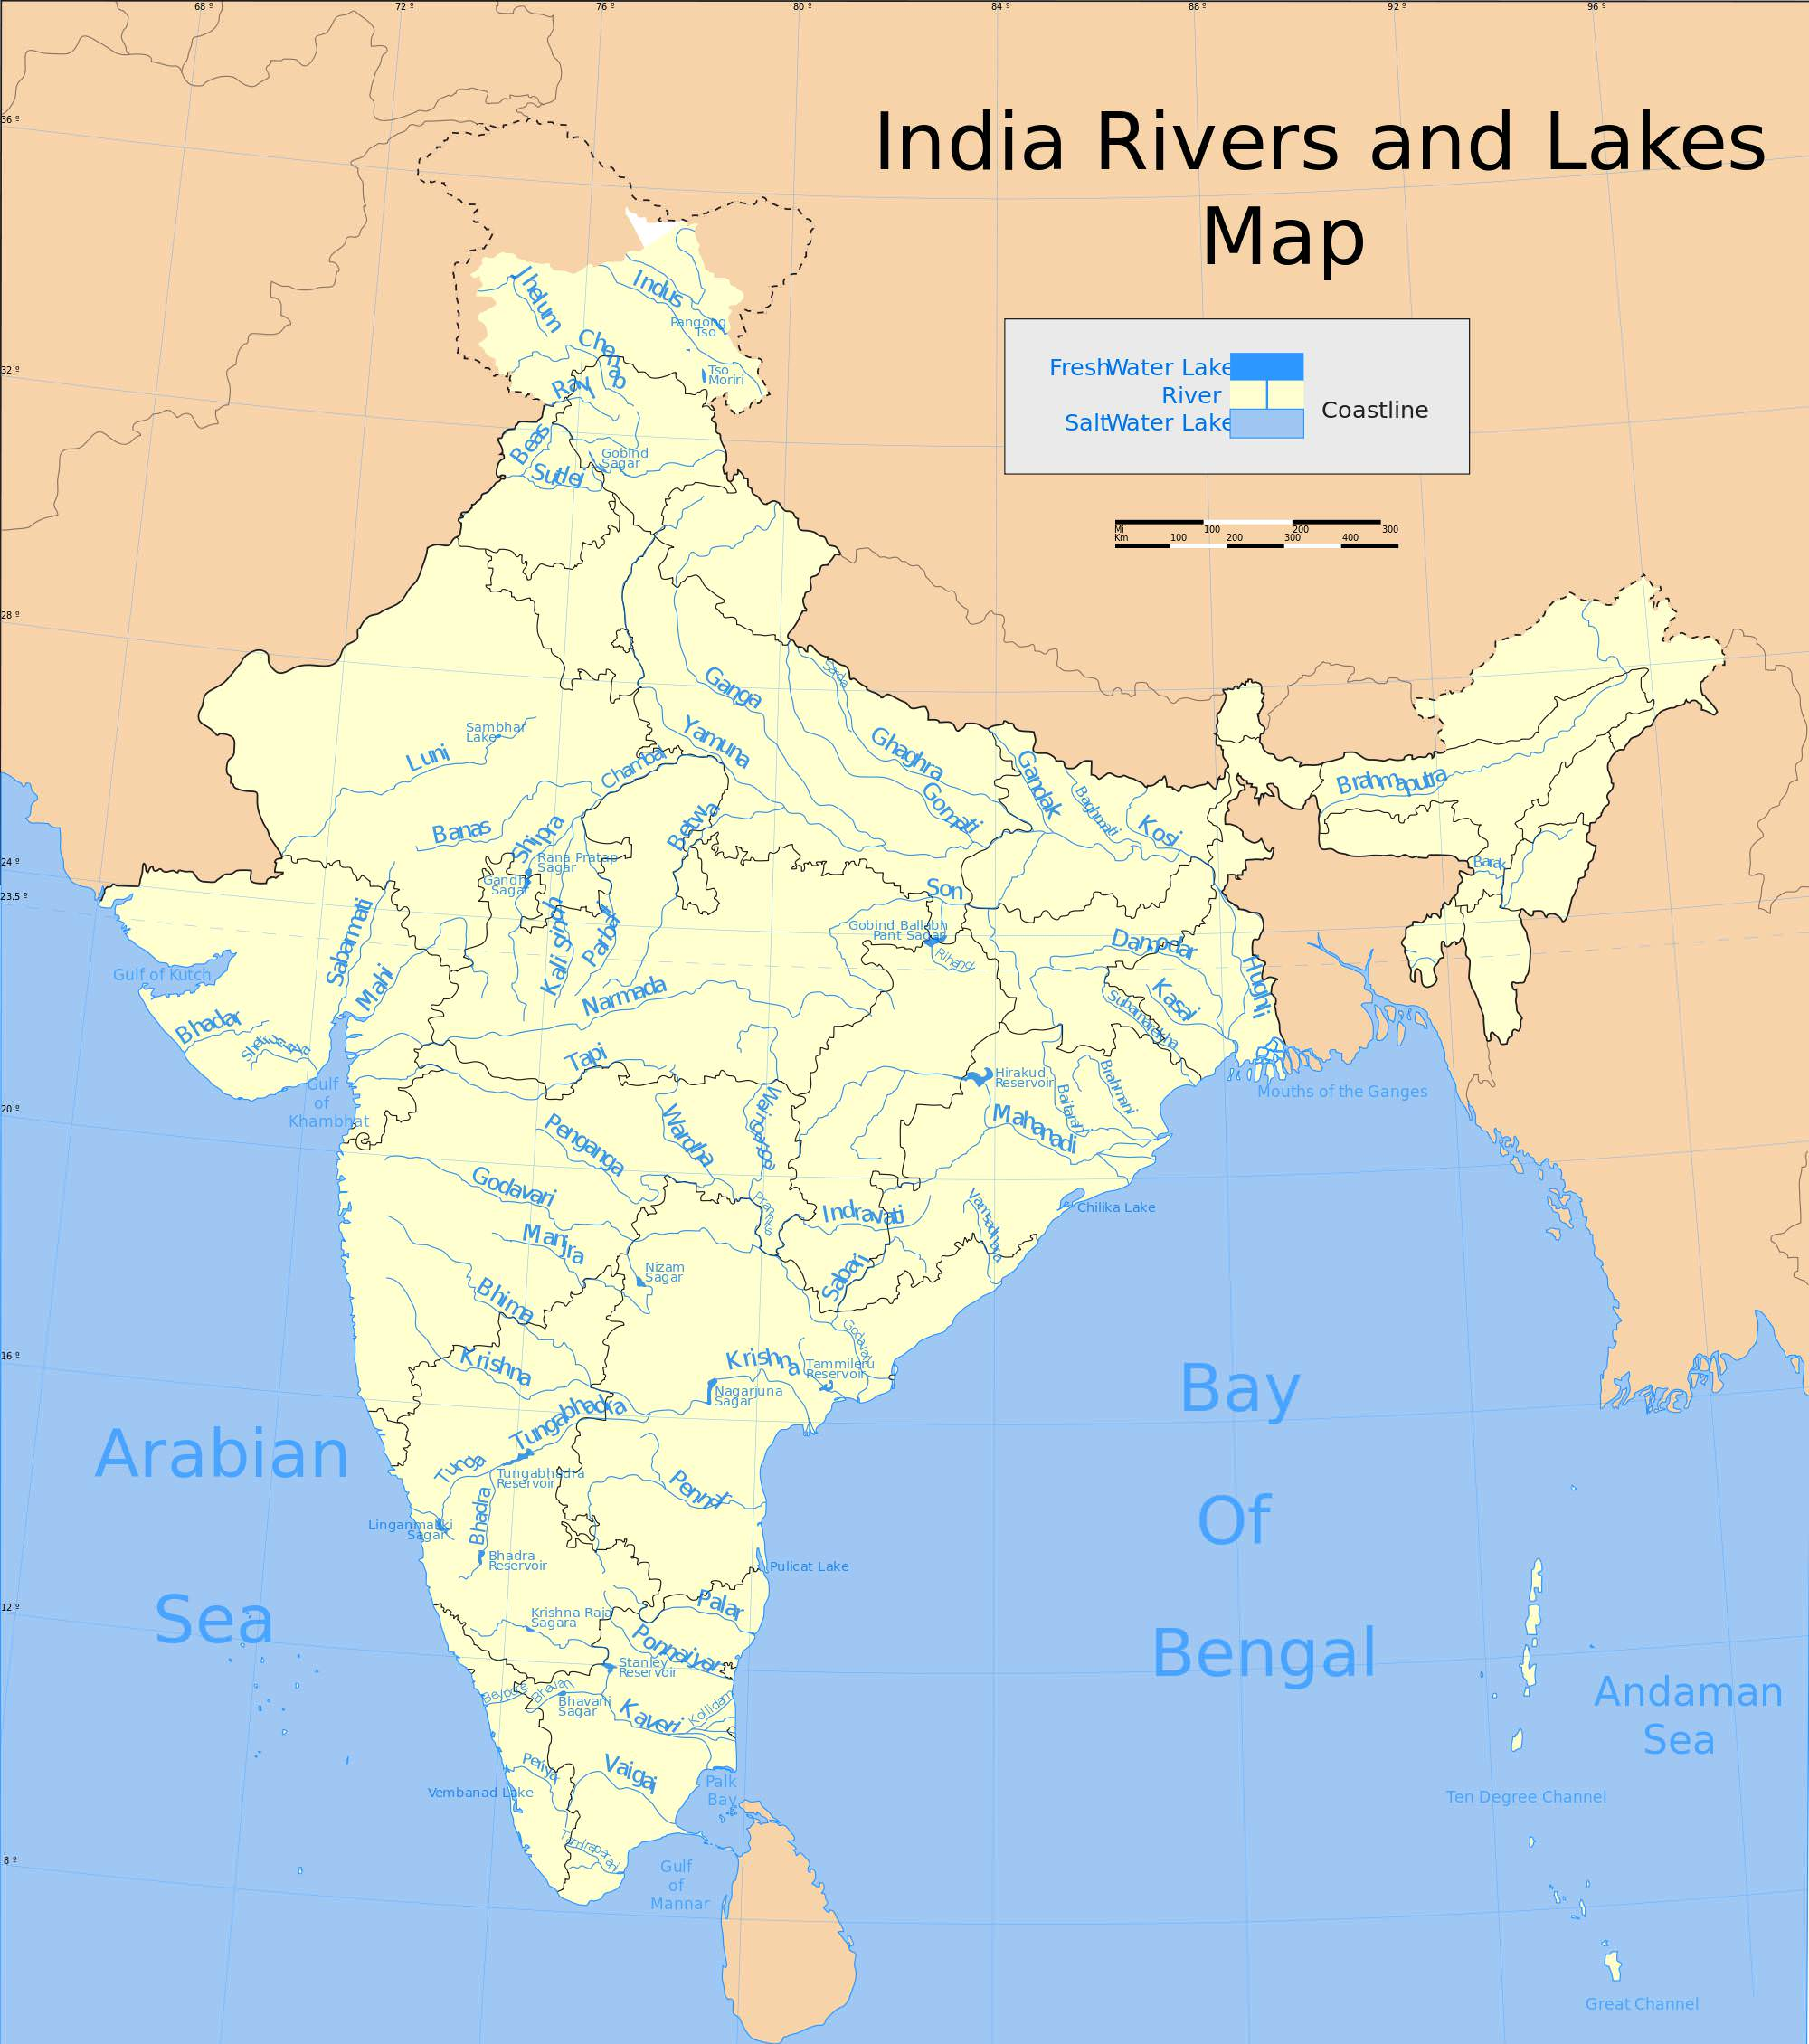 indian rivers and lakes